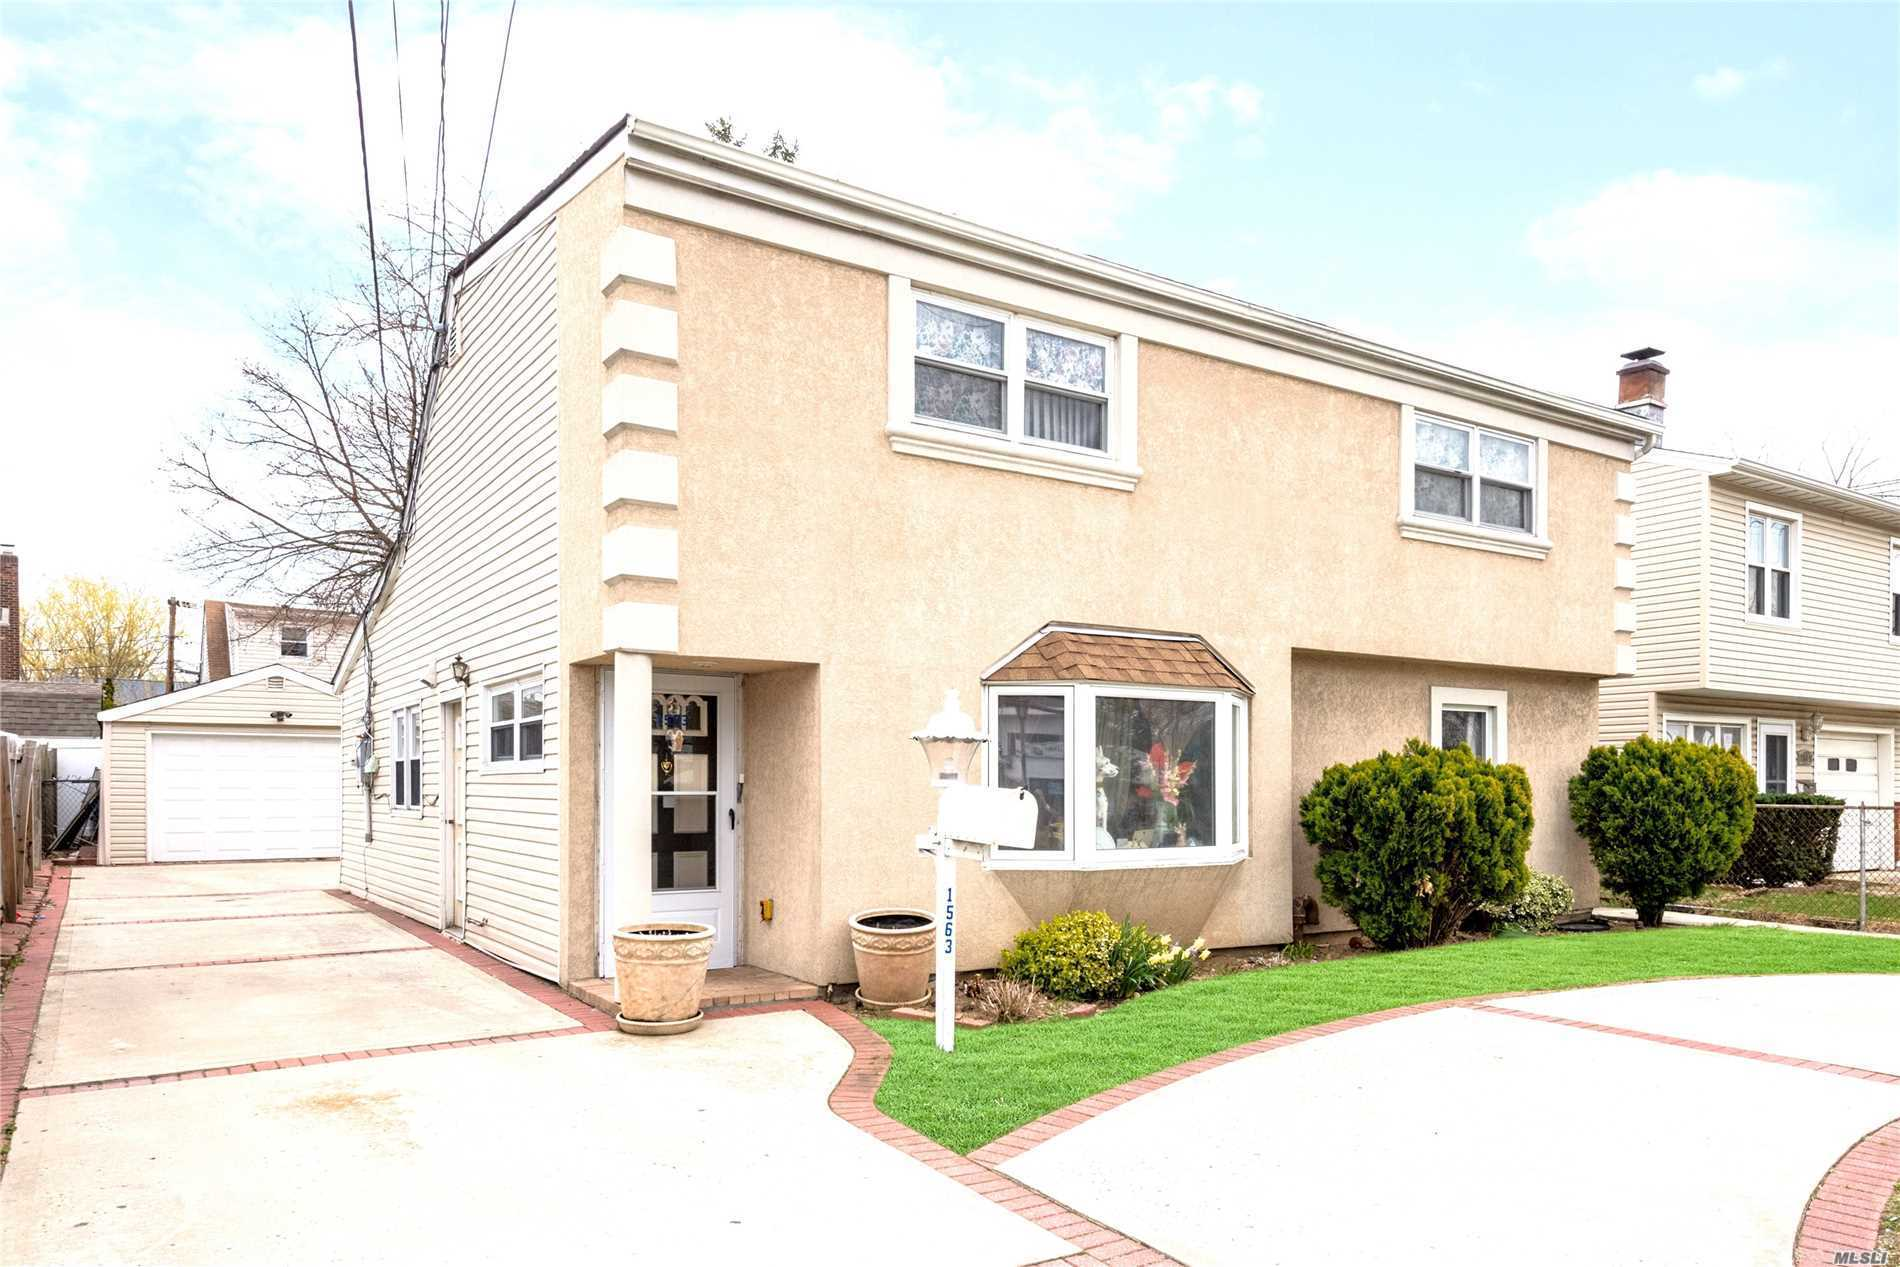 Best Priced Colonial In Merrick -- Features 5/6 Bedrooms, 3 Full Bathrooms, 2 Living Rooms, Dining Room Also Features Skylights. Ideal For Mother/Daughter, Second Floor Has A Separate Private Entrance, Spacious Driveway -- Can Be Easily Converted To A Legal Two Family Home. Taxes Are Being Grieved.